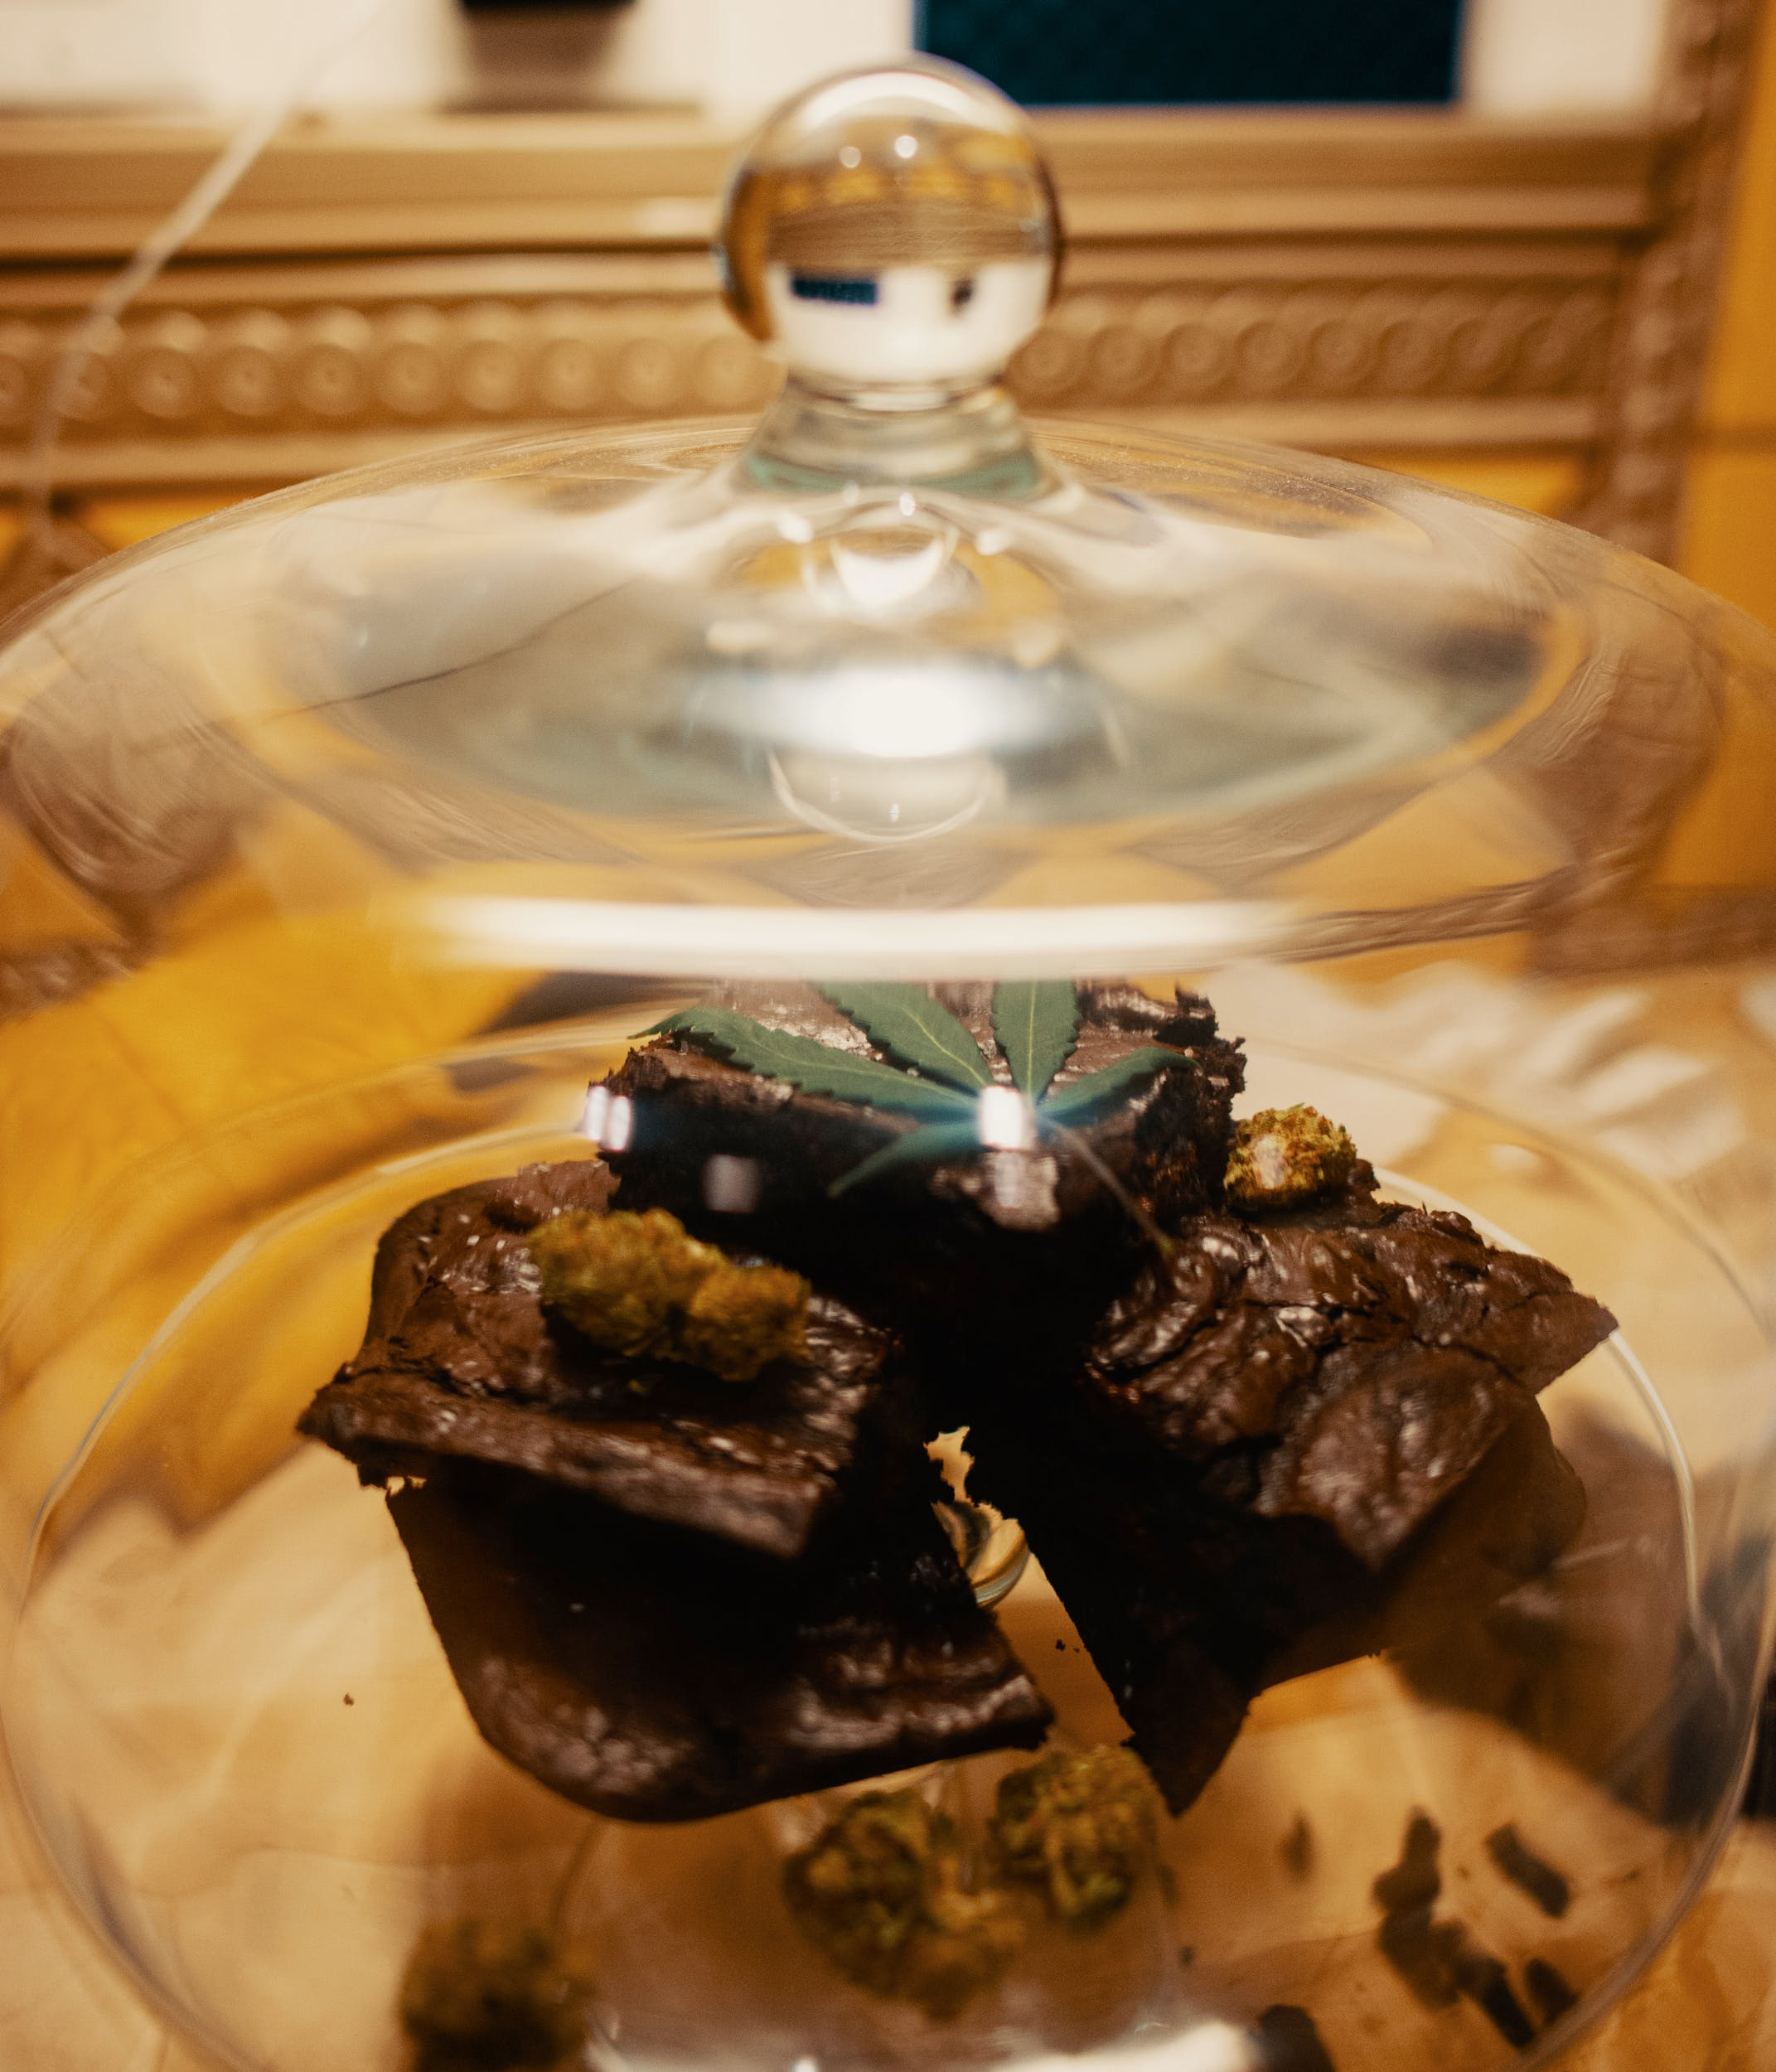 Best Weed Brownies 35 These Are The Best Weed Brownies For When You Cant Make Your Own